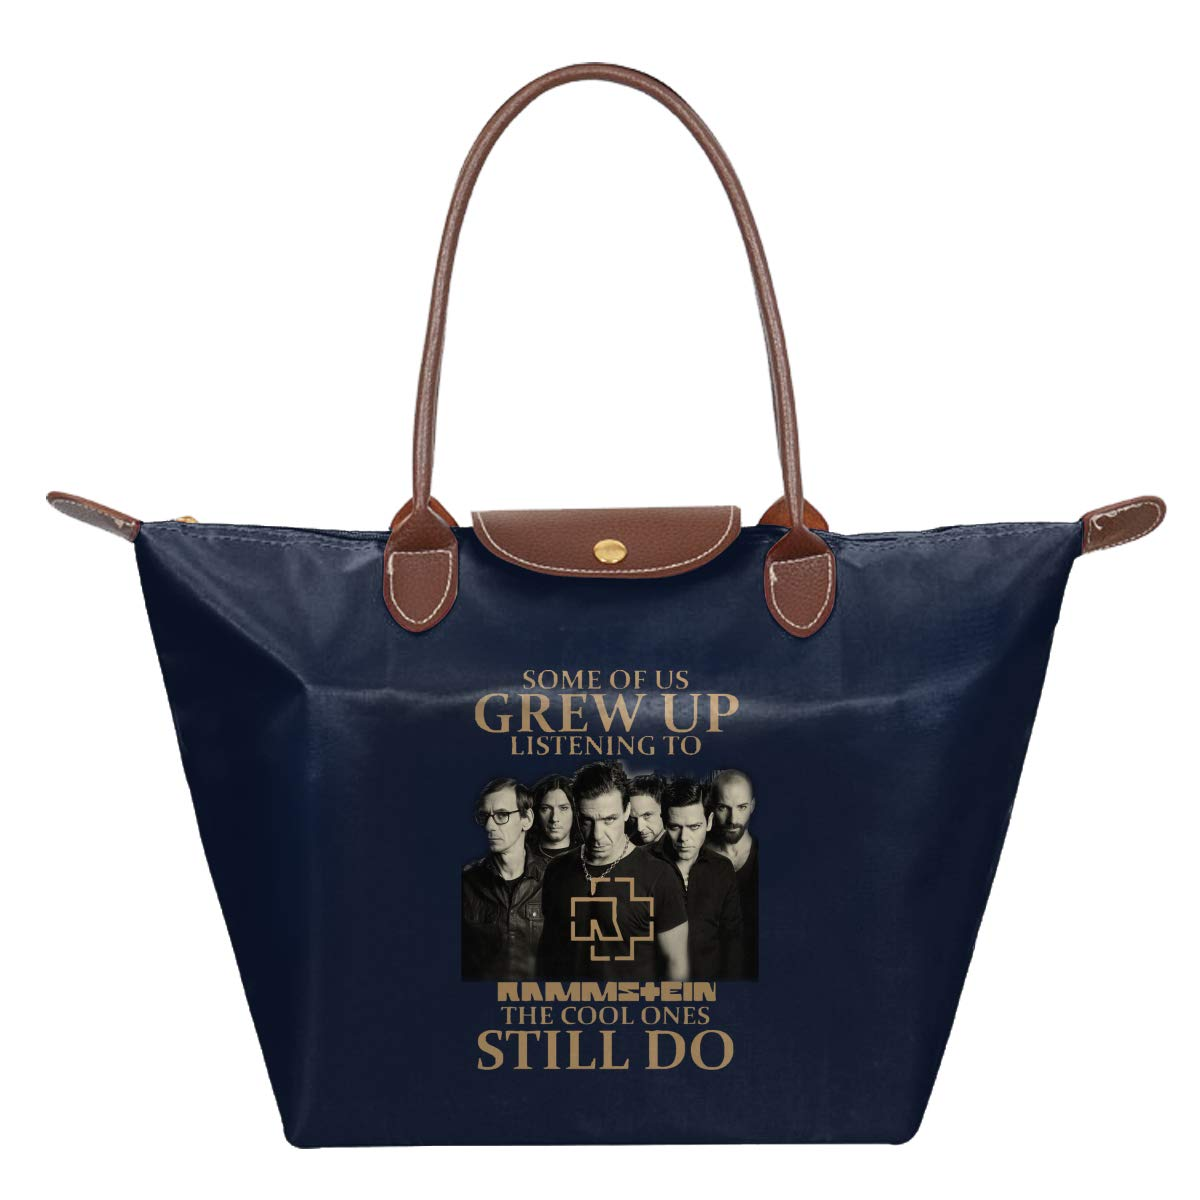 Some Of Us Grew Up Listening To Rammstein The Cool Ones Waterproof Leather Folded Messenger Nylon Bag Travel Tote Hopping Folding School Handbags